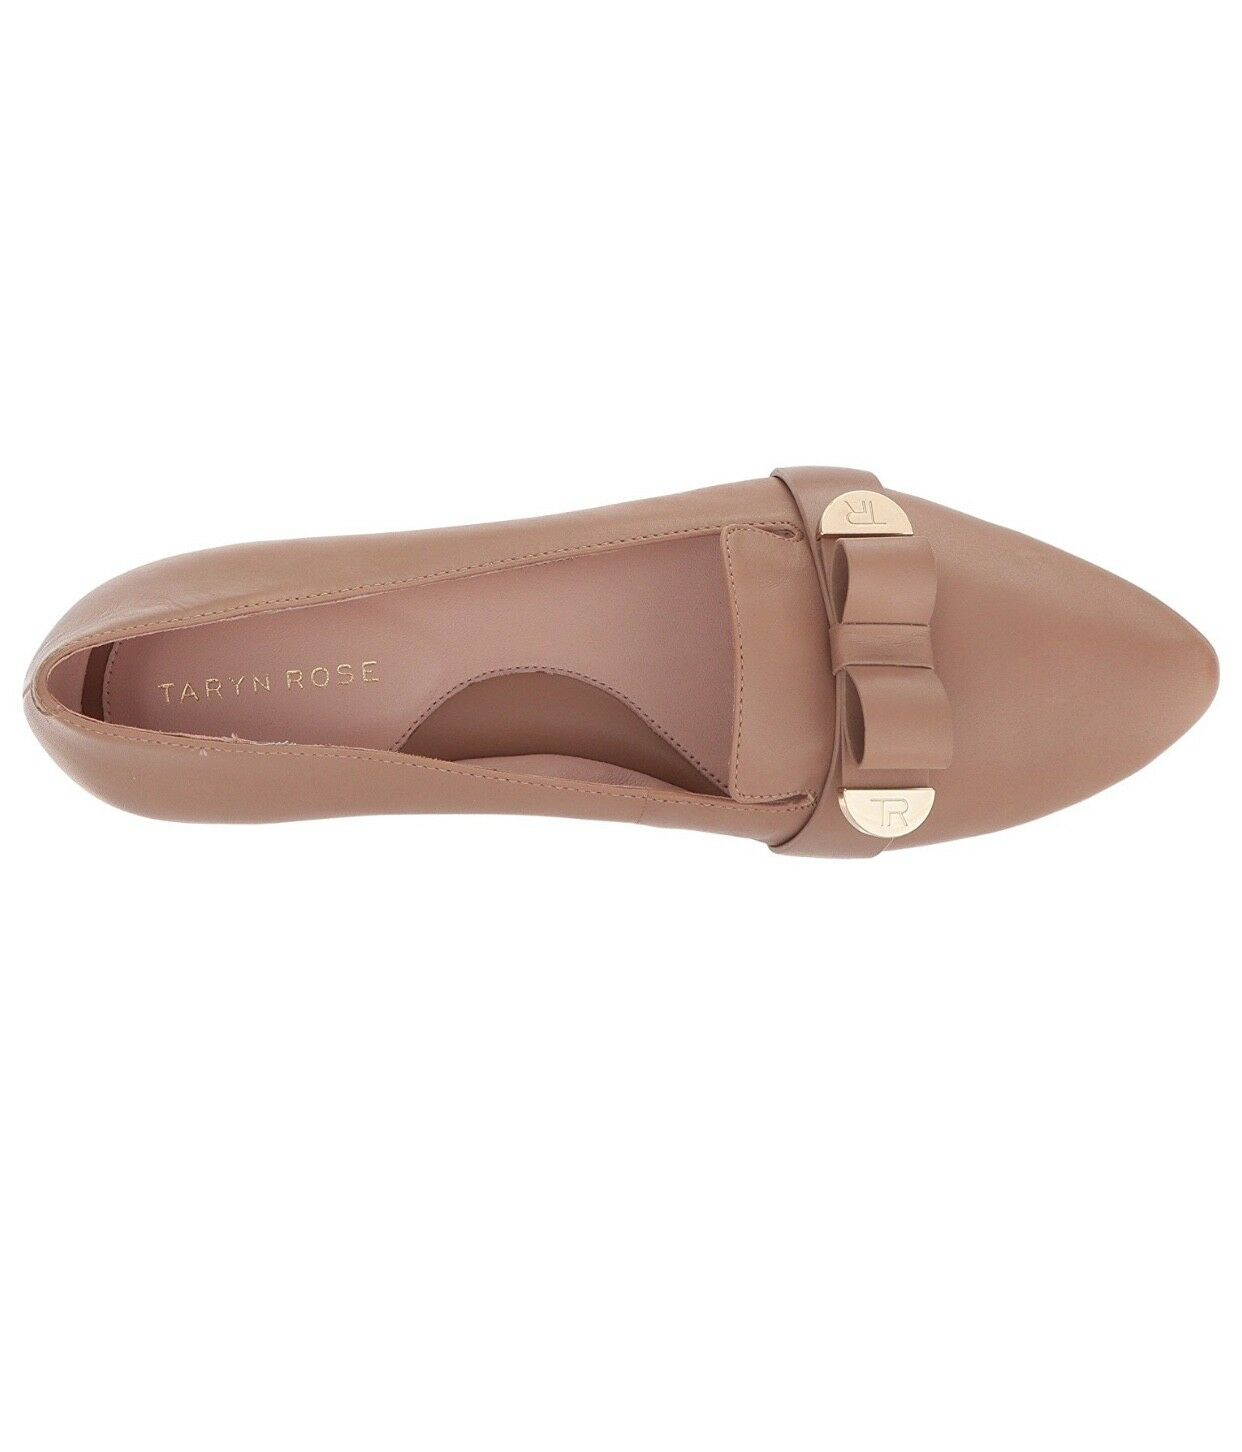 New taryn pink pink pink women's edith flat shoes aa1218